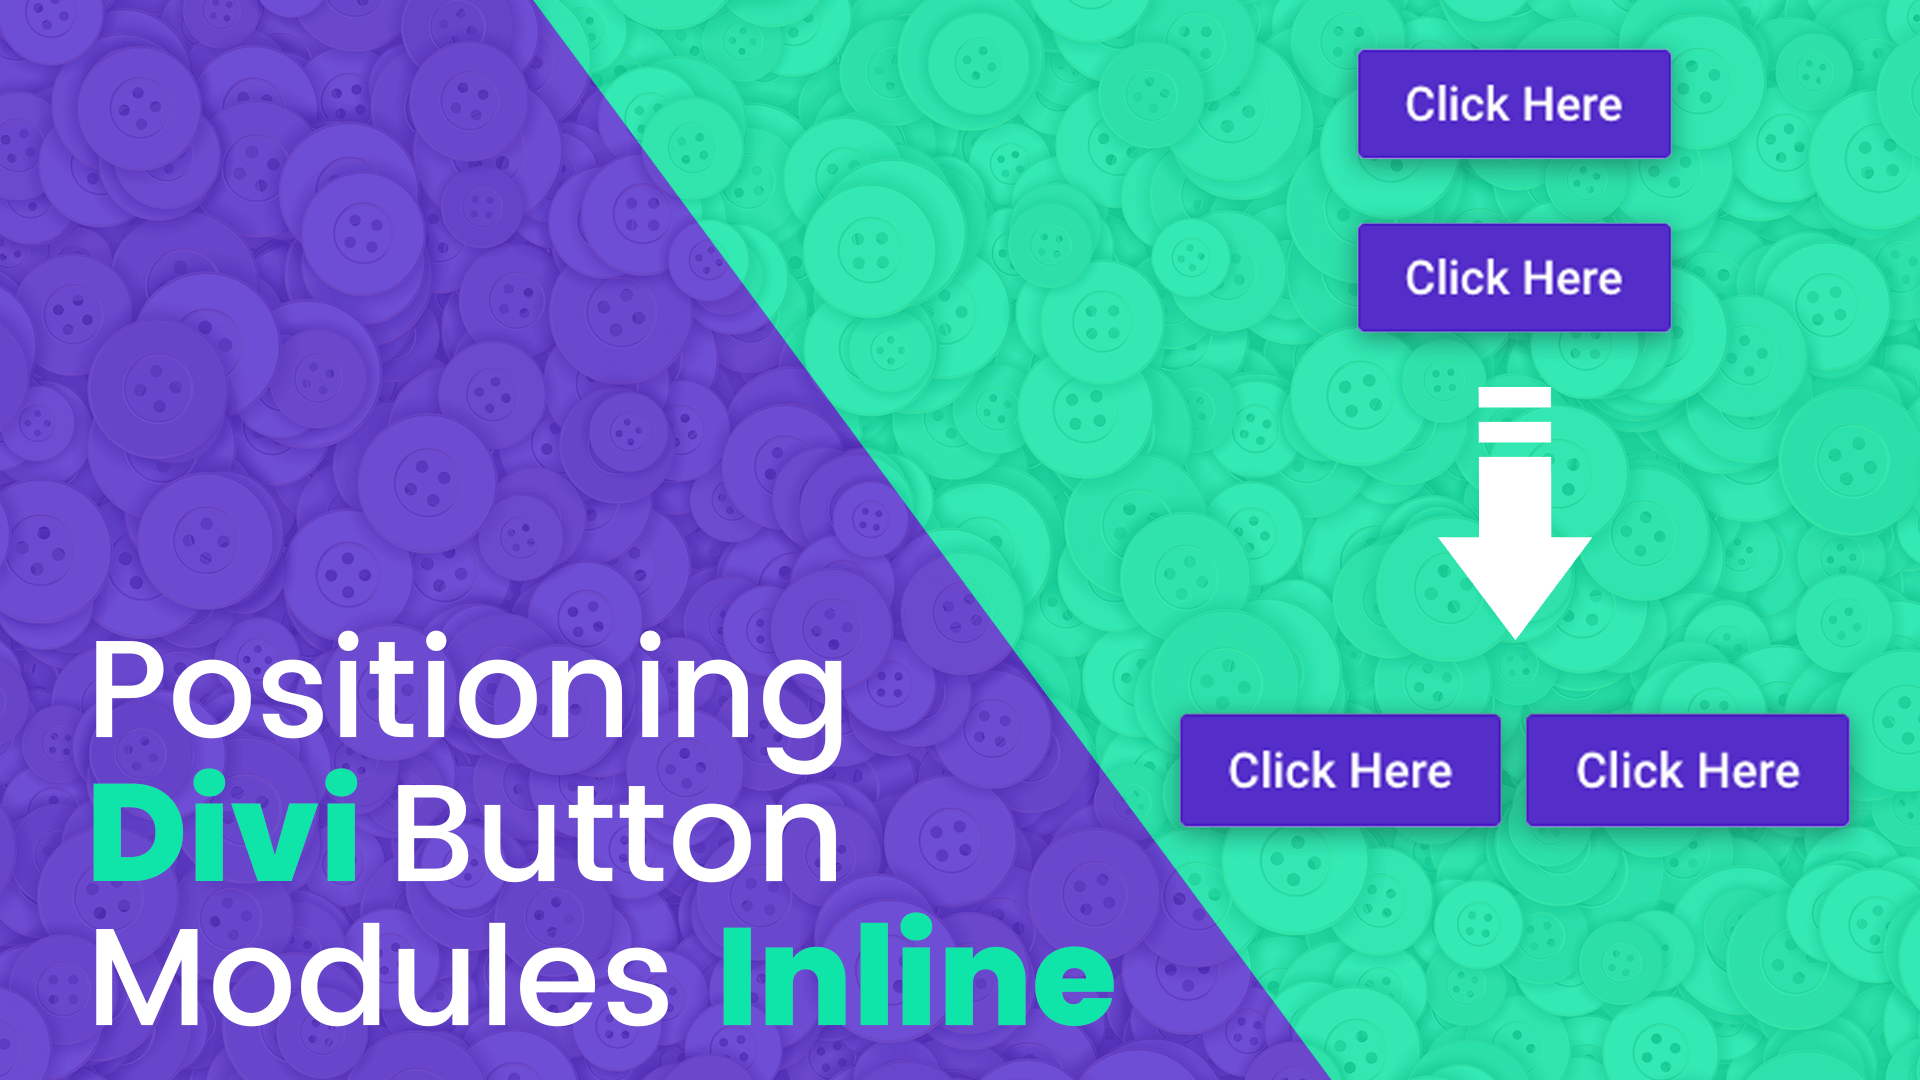 Add Two Divi Button Modules Inline Next to Each Other